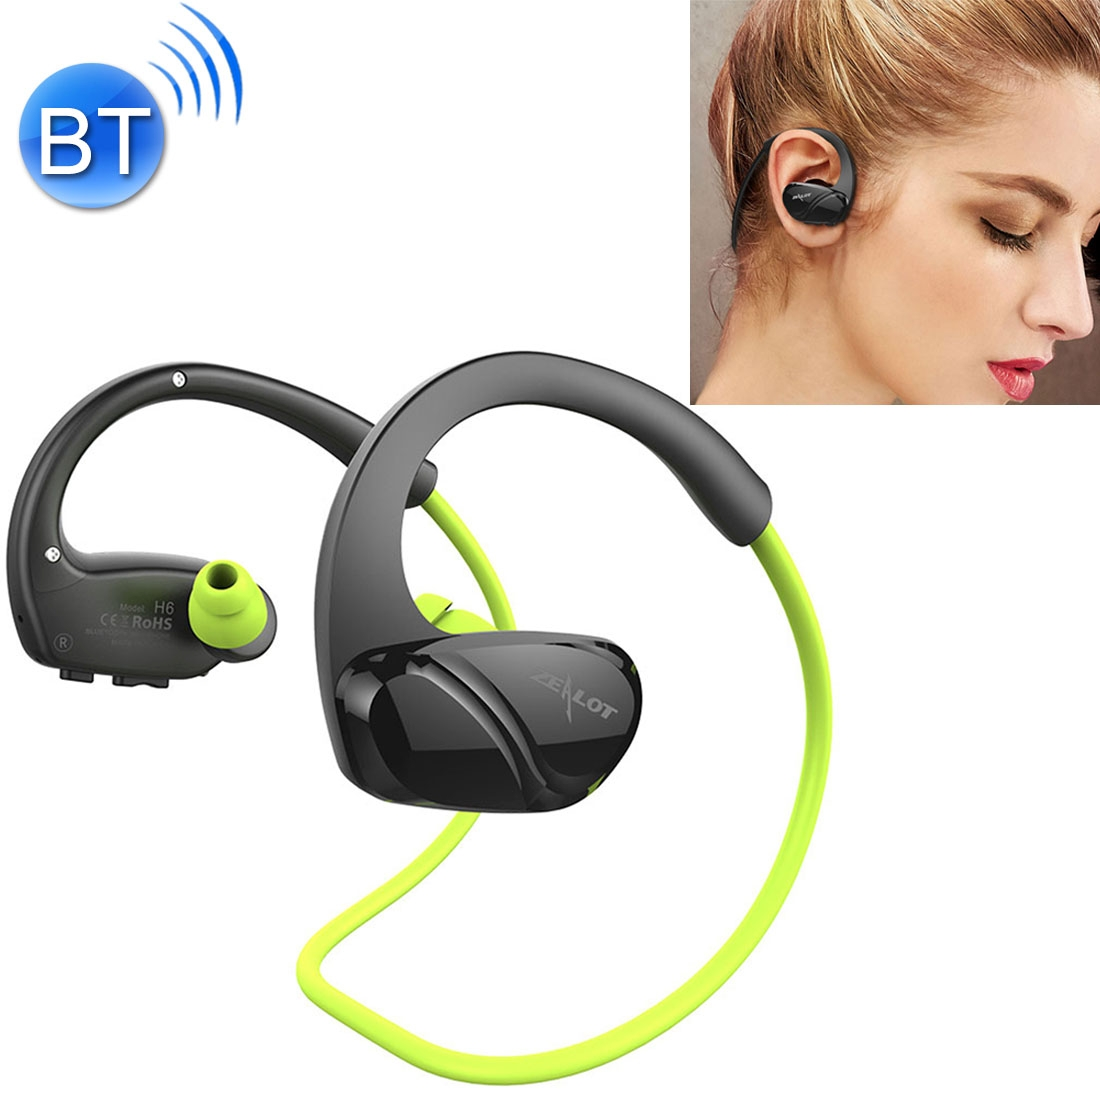 ZEALOT H6 High Quality Stereo HiFi Wireless Neck Sports Bluetooth 4.0 Earphone In-ear Headphone with Microphone, For iPhone & Android Smart Phones or Other Bluetooth Audio Devices, Support Multi-point Hands-free Calls, Bluetooth Distance: 10m (Green)